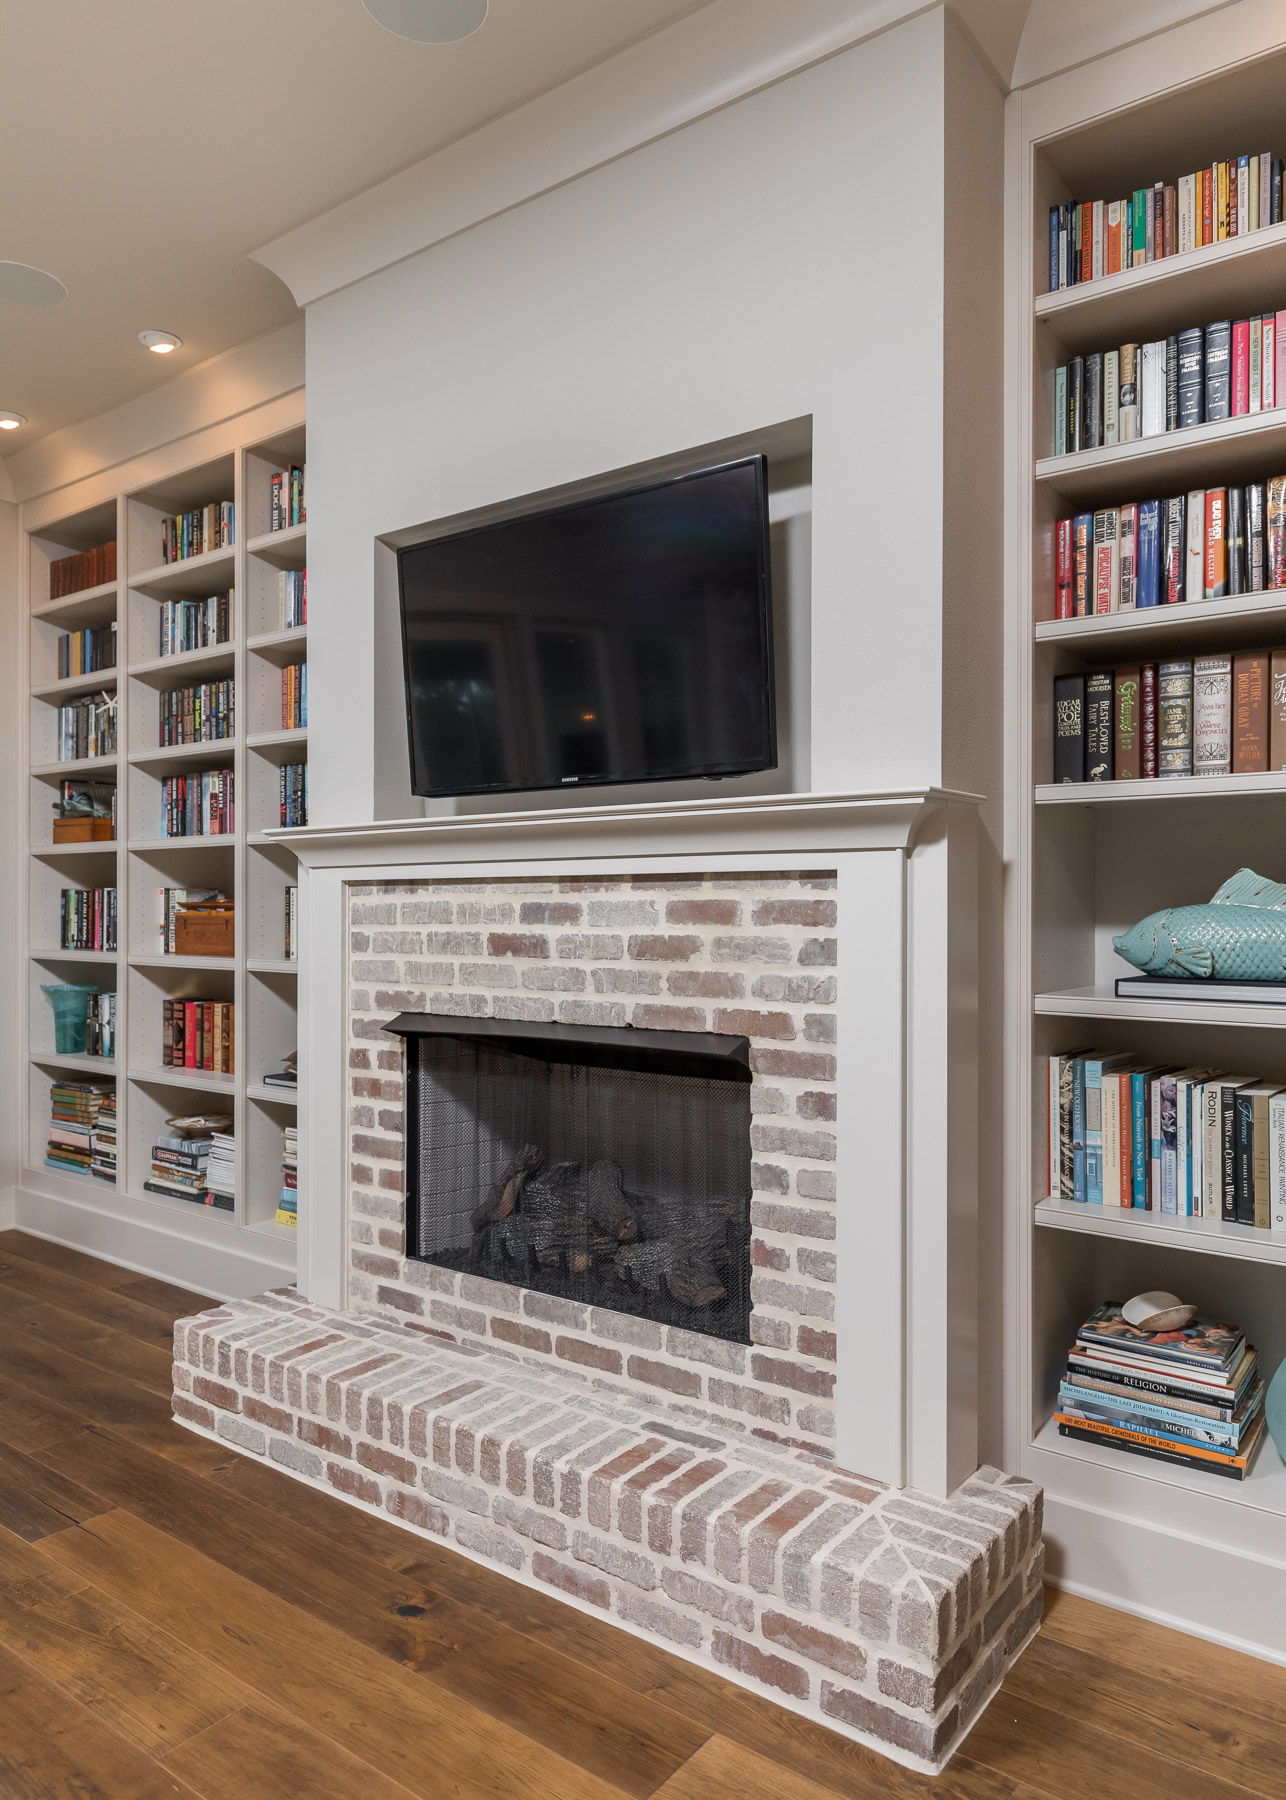 White Living room bookshelves with adjustable shelving